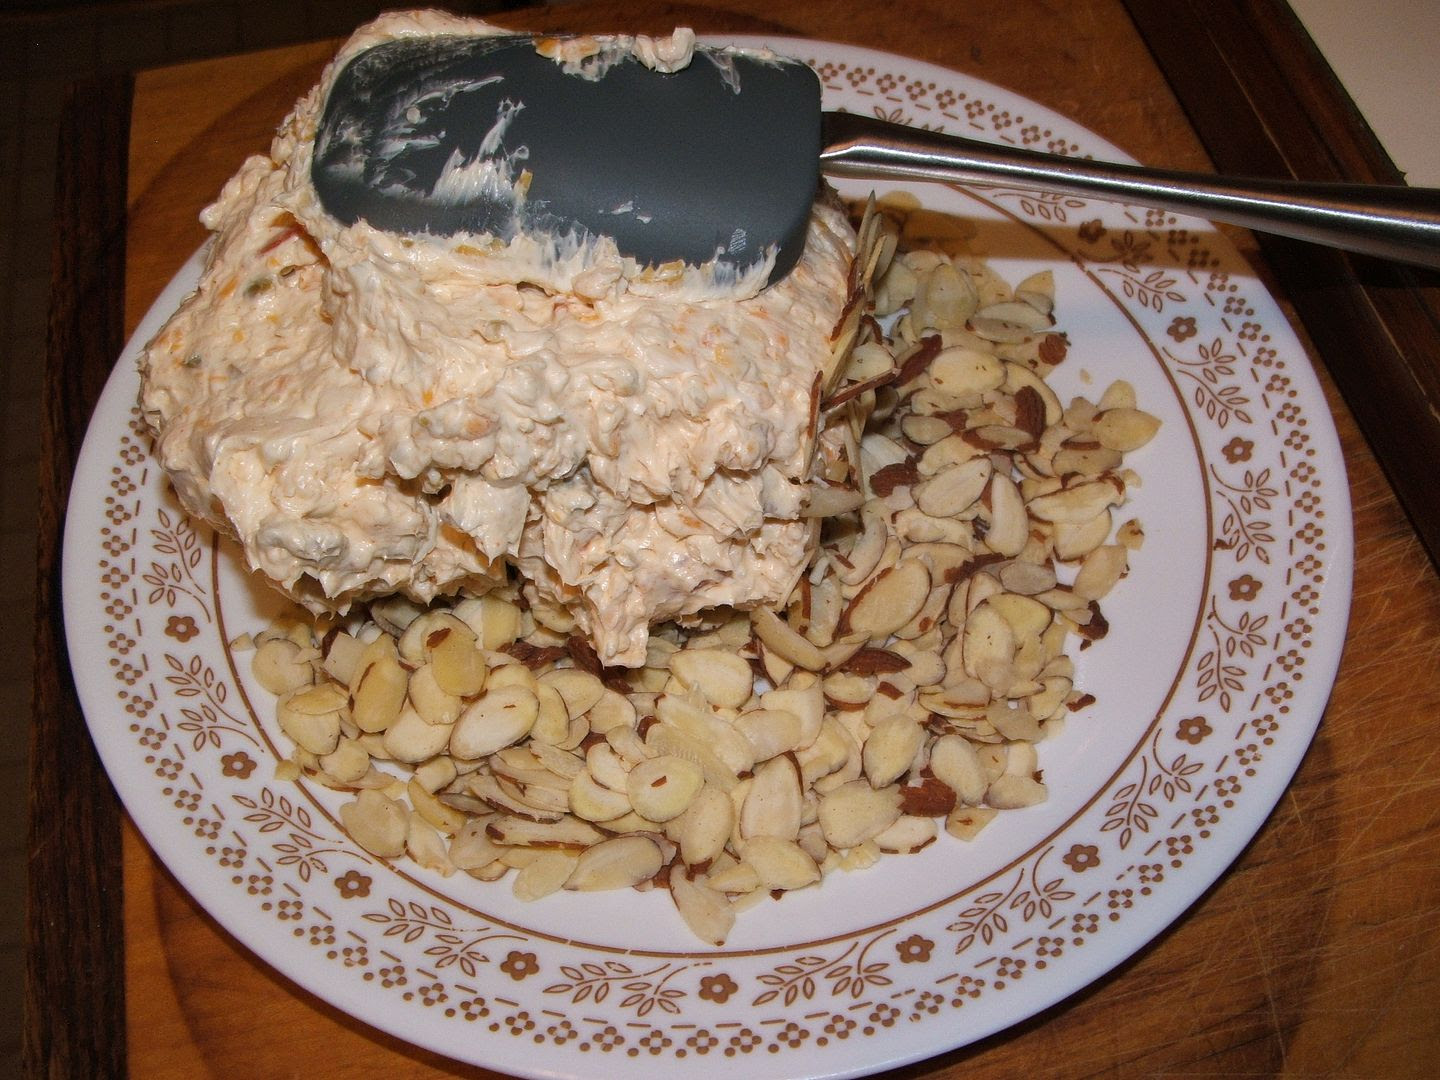 Cheeseball by Angie Ouellette-Tower for godsgrowinggarden.com photo 003_zps83b8430d.jpg